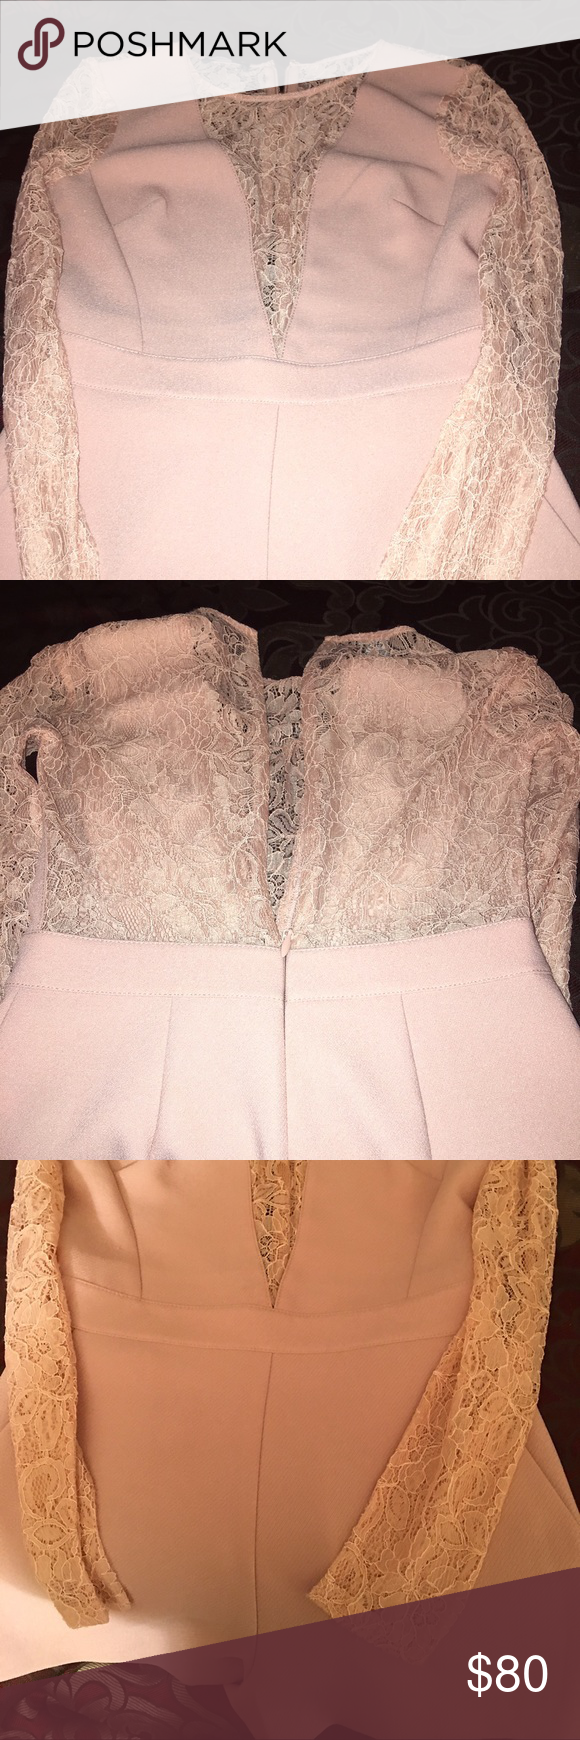 BeBe Romper Light mauve lace romper. Purchased directly from BeBe store in the local mall. Never worn only tried on. bebe Dresses Mini